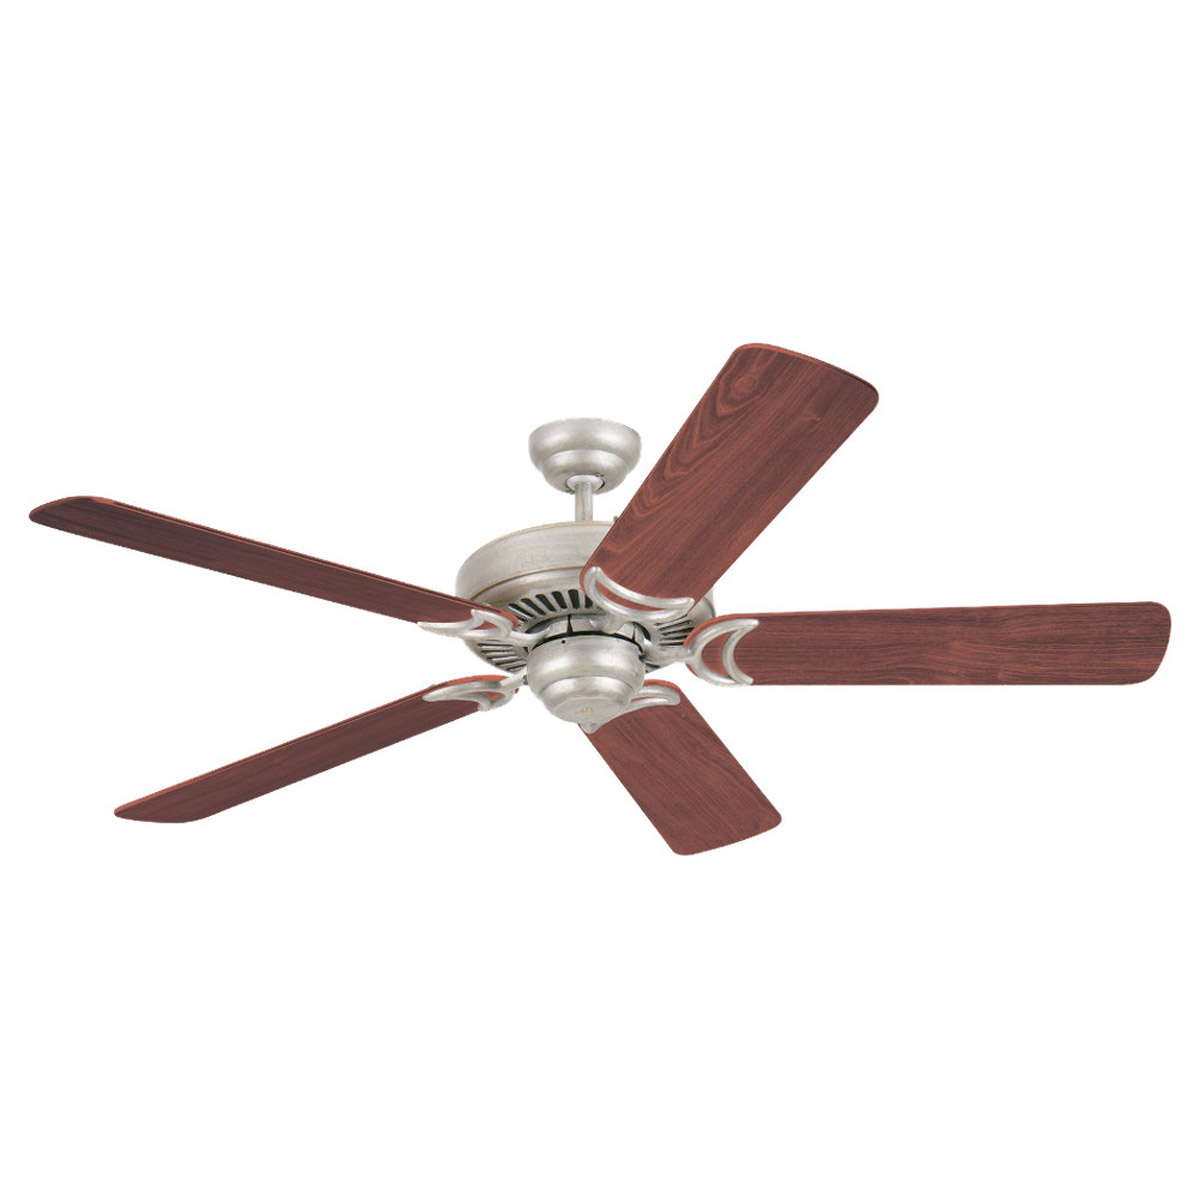 Sea Gull Lighting 52in Celebrity Deluxe Ceiling Fan in Brushed Nickel 1535-962